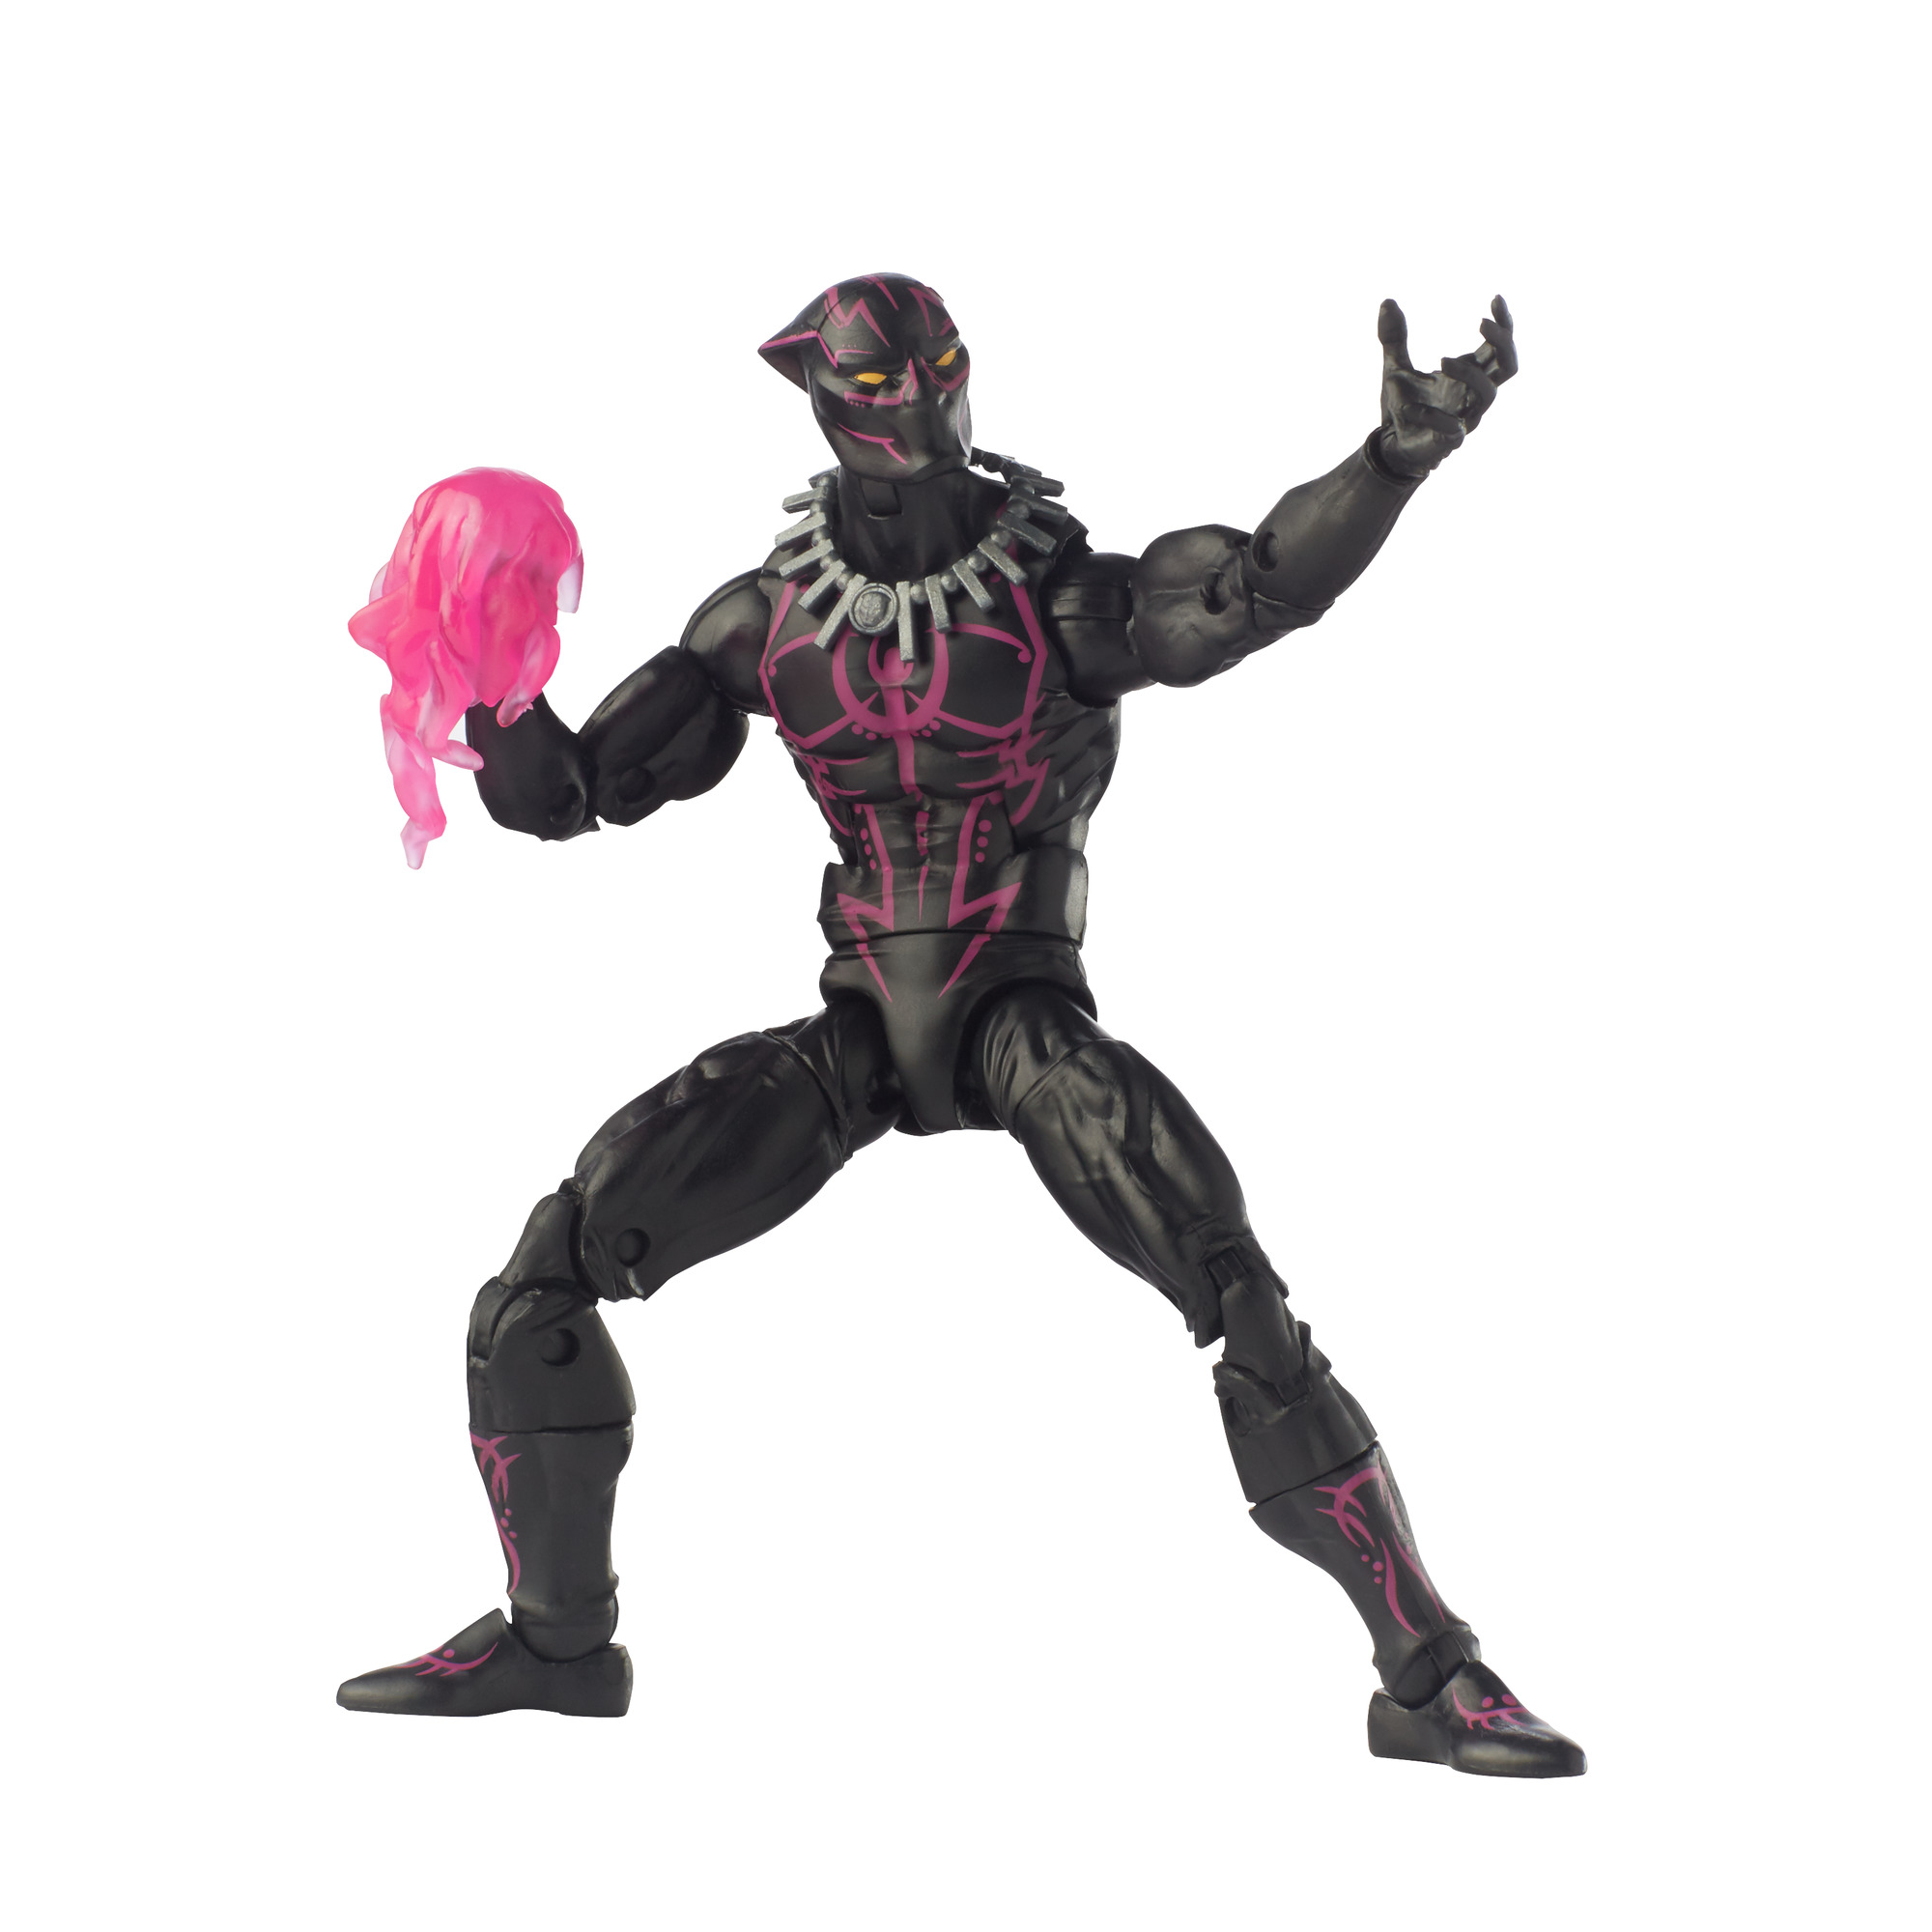 Marvel Legends Series 6-inch Vibranium Suit Black Panther